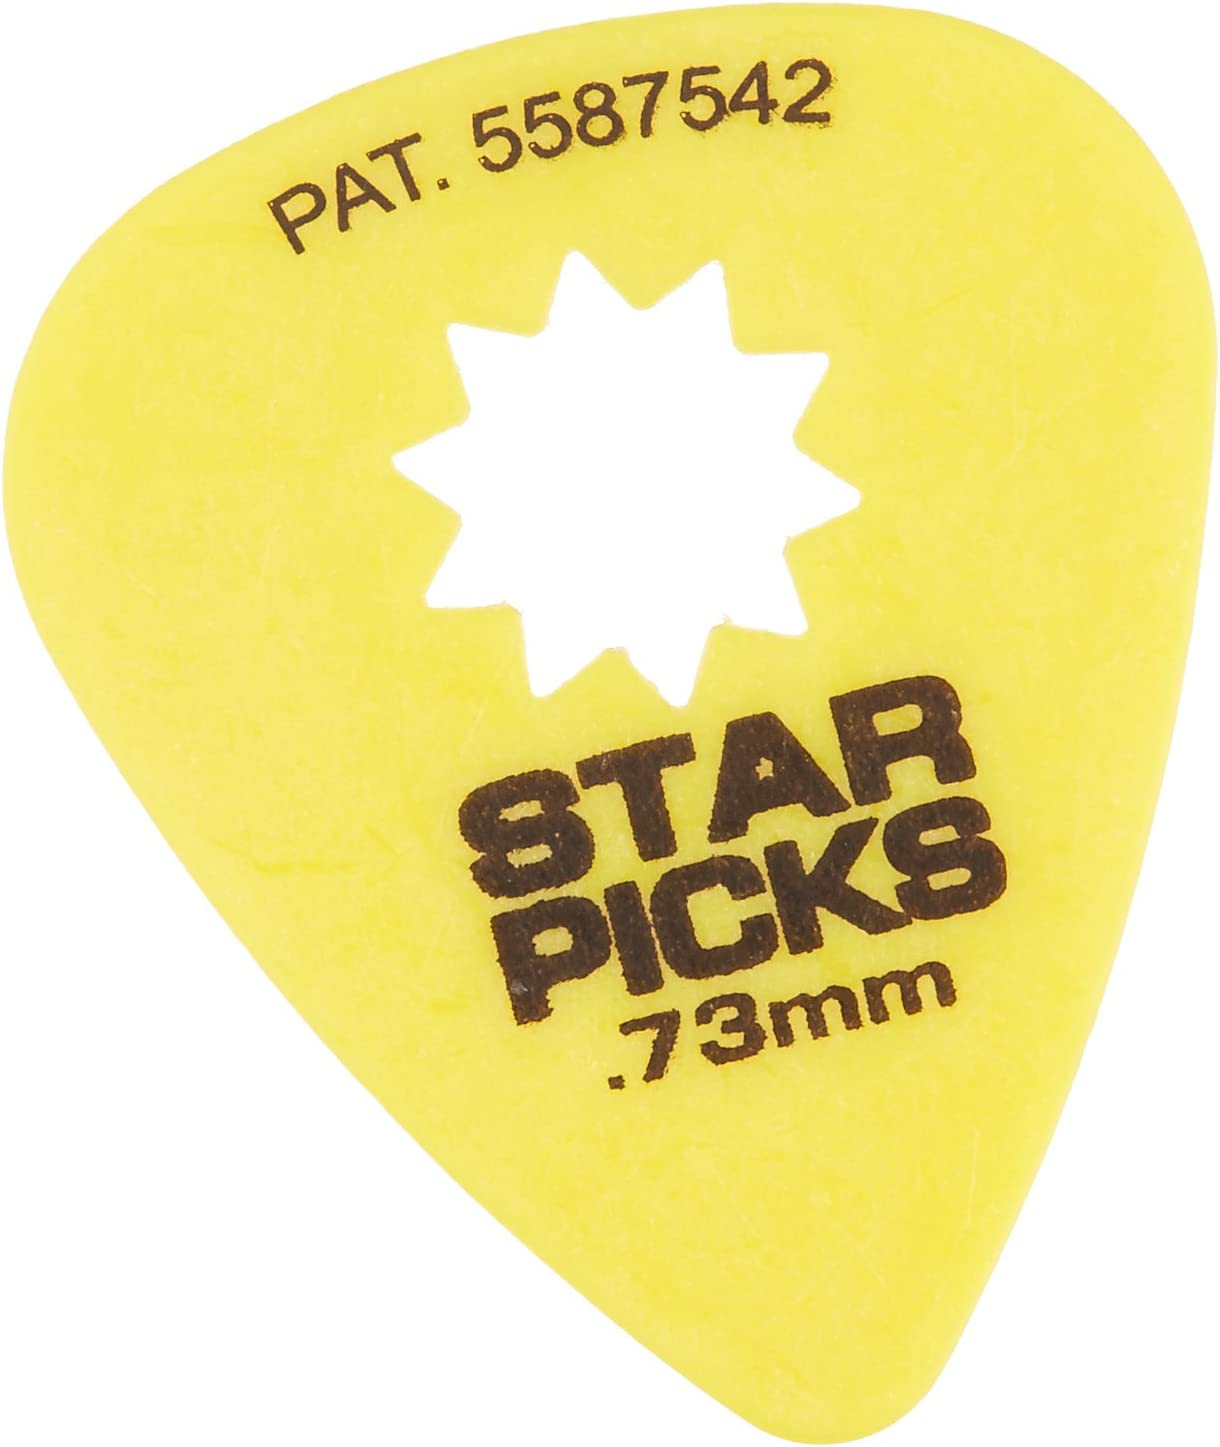 EVERLY STAR GRIP PICKS .88 MM GUITAR PICKS MADE IN THE USA 6 PICKS